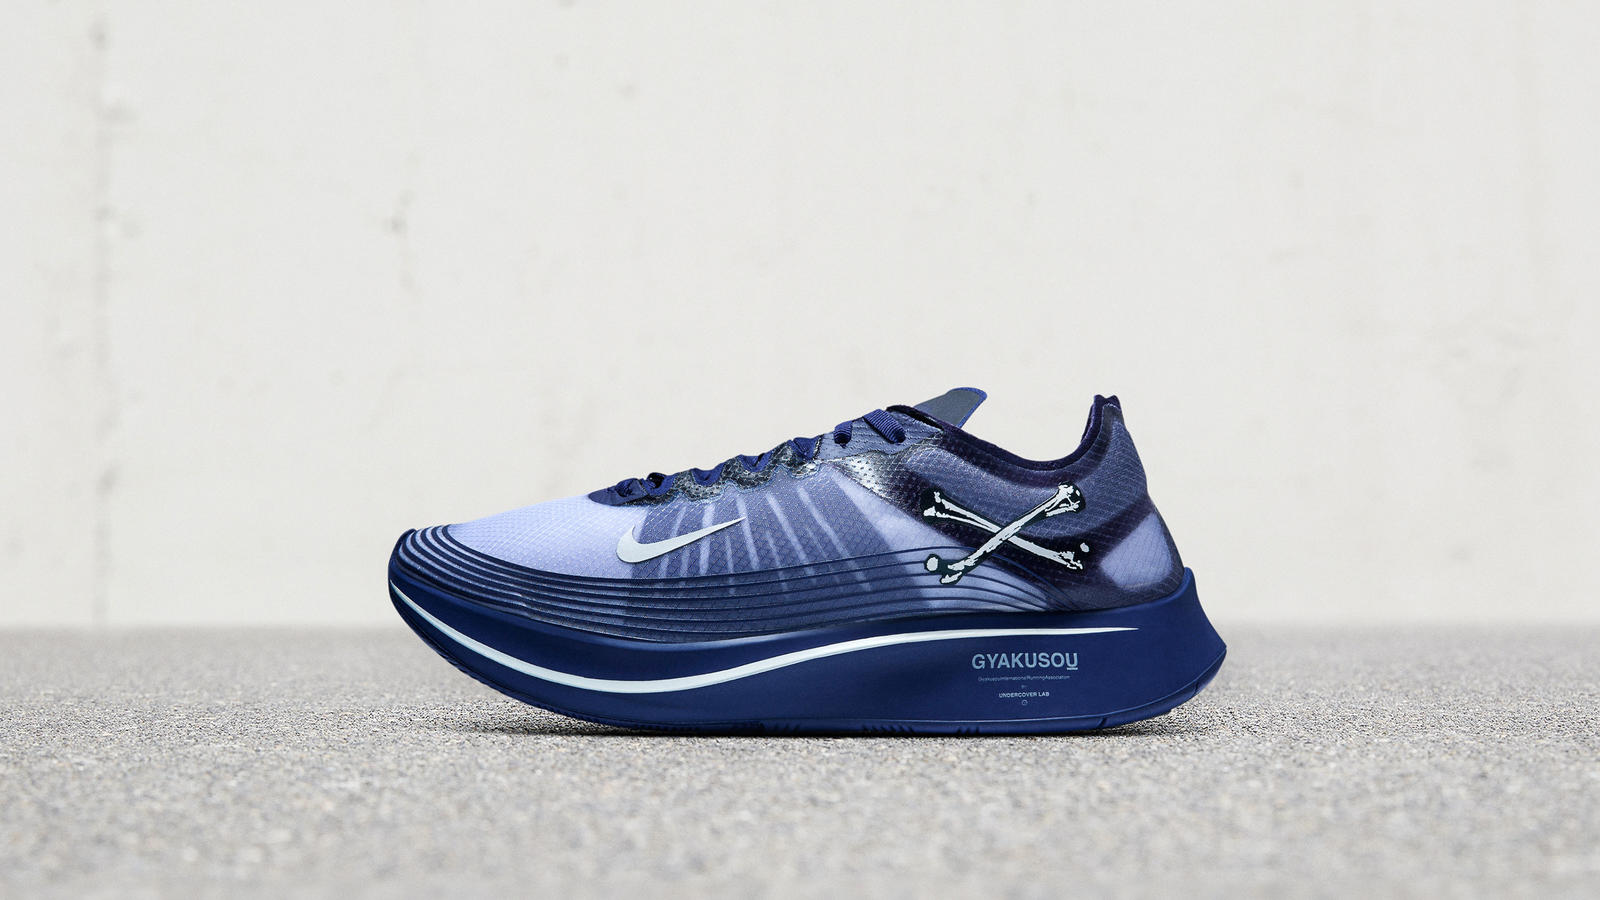 How to Get the Nike Zoom Fly SP Gyakusou 7